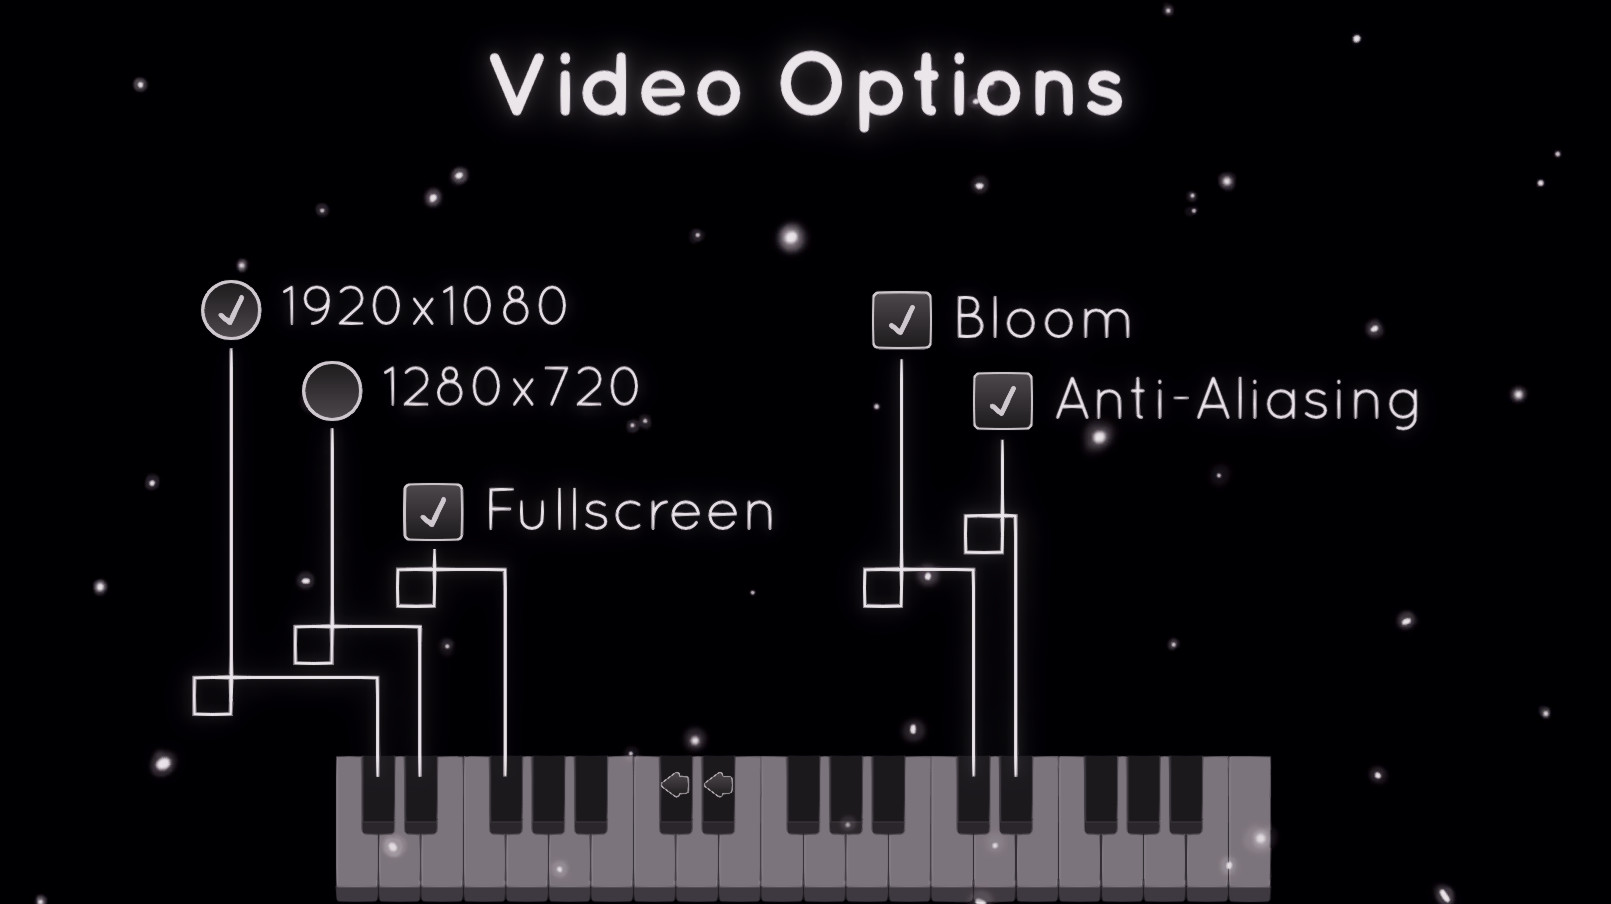 Video Options. A variety of radio buttons for resolutions and toggle buttons for fullscreen, bloom, and anti-aliasing.